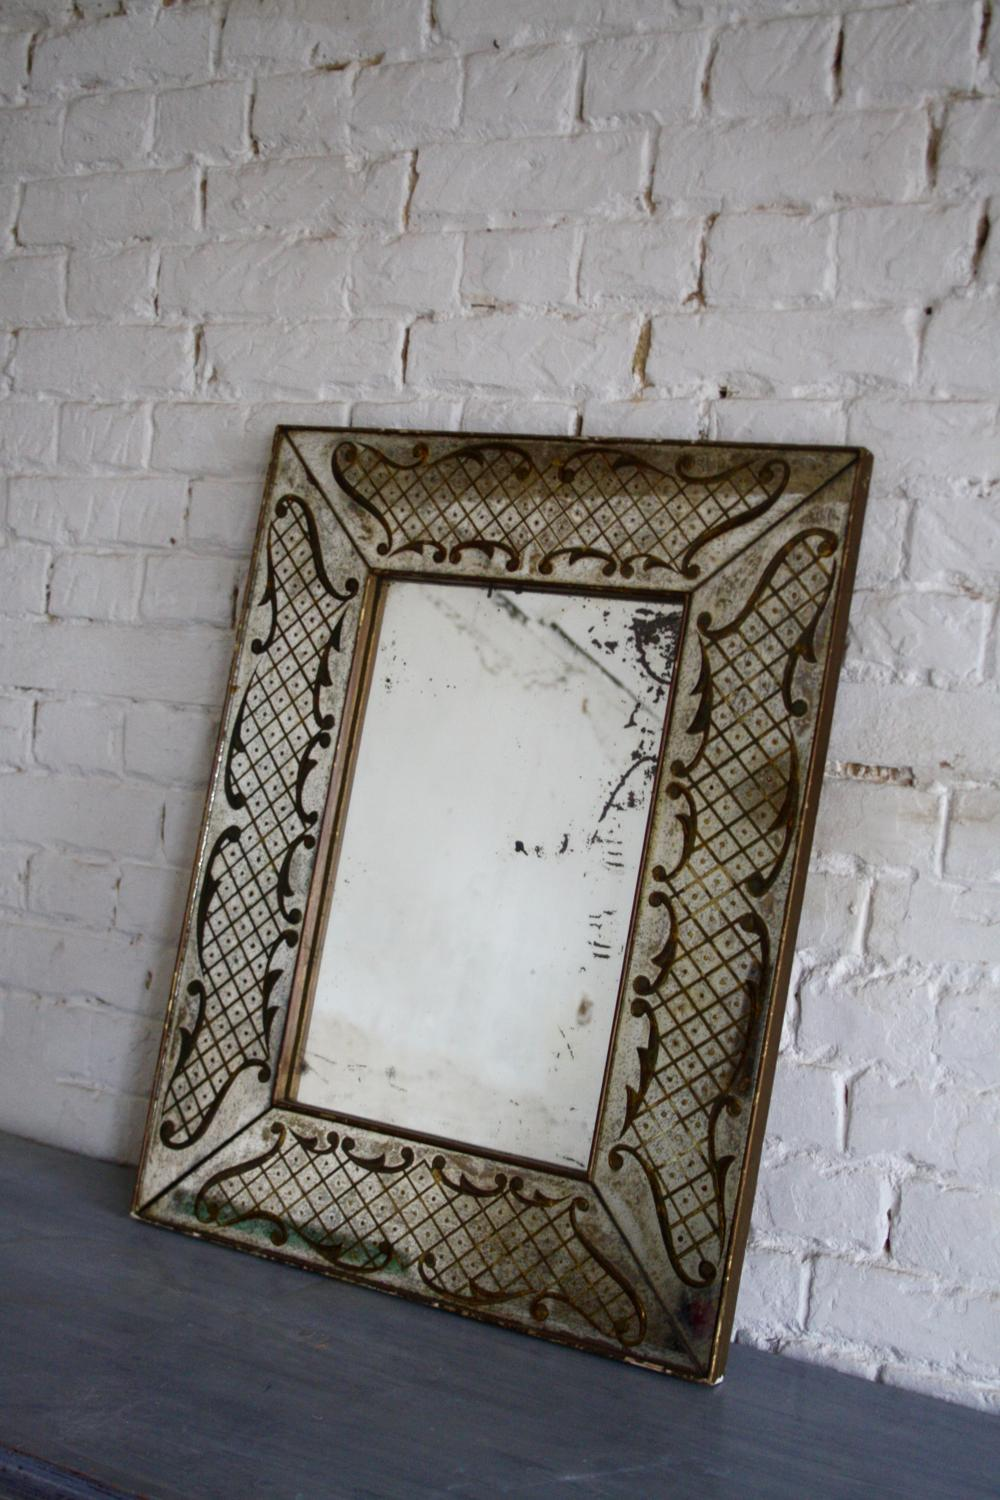 19th century French mirror with gilding decoration